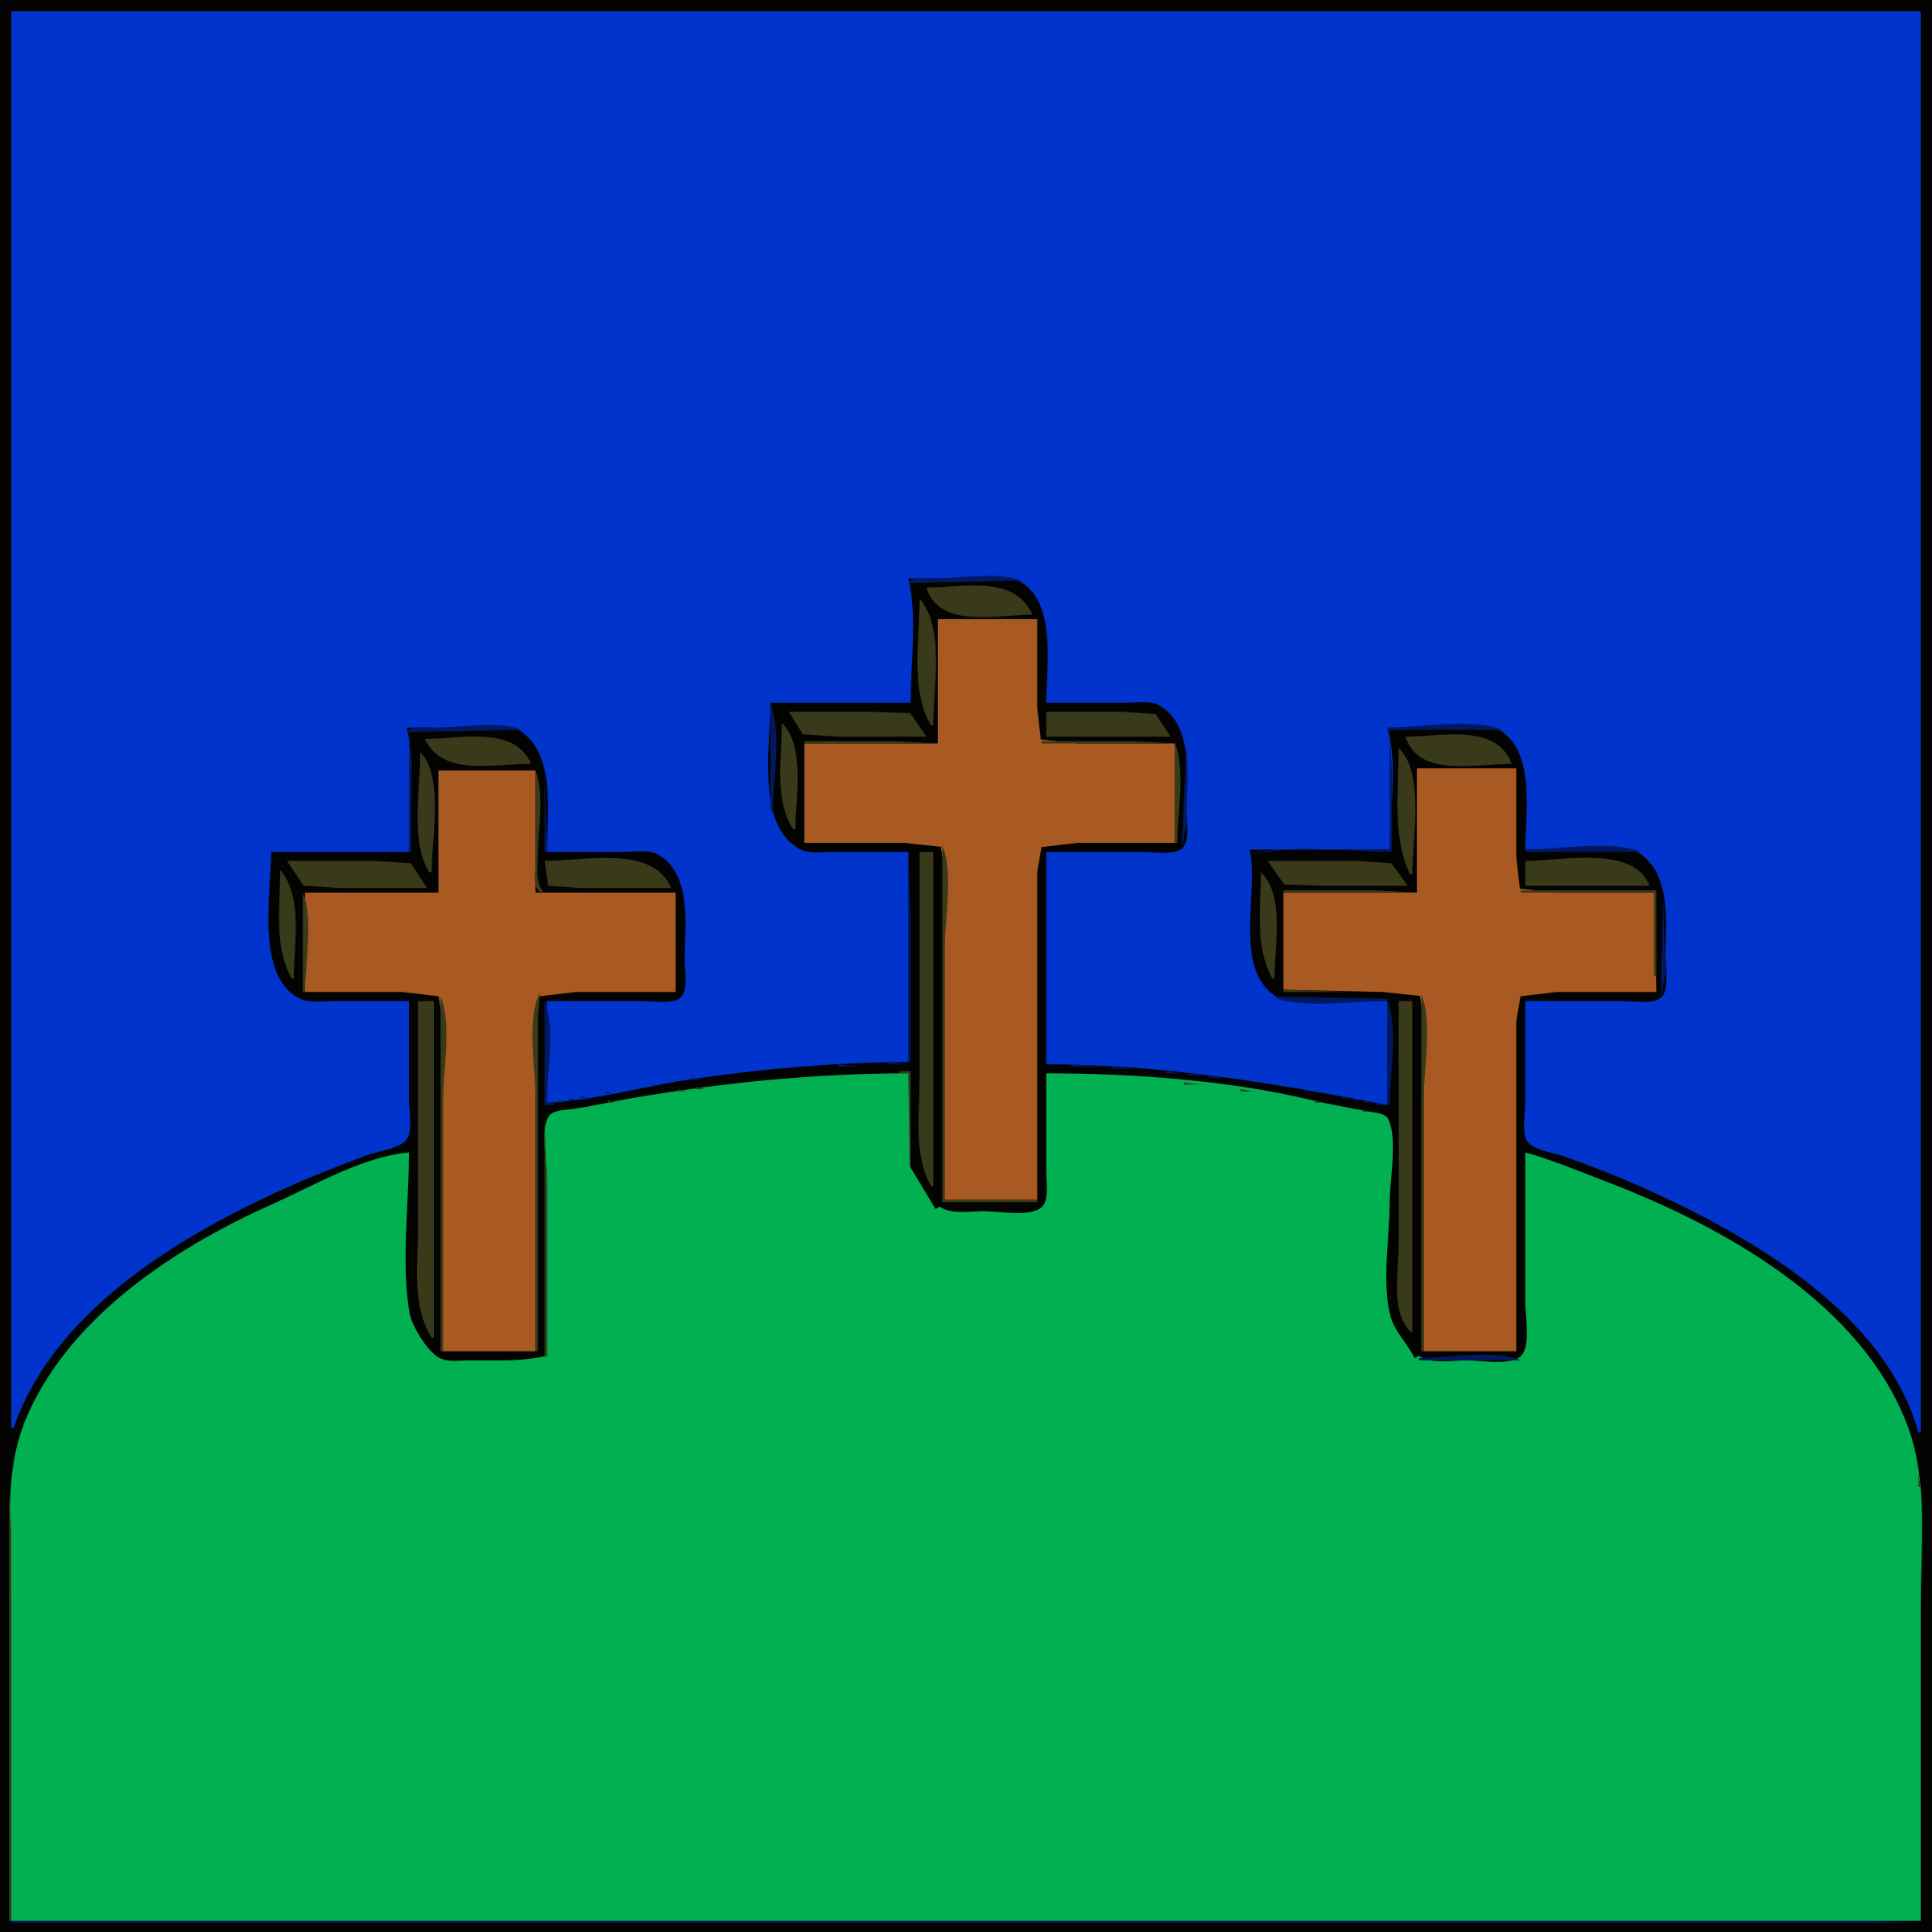 3 crosses on a hill by barnheartowl